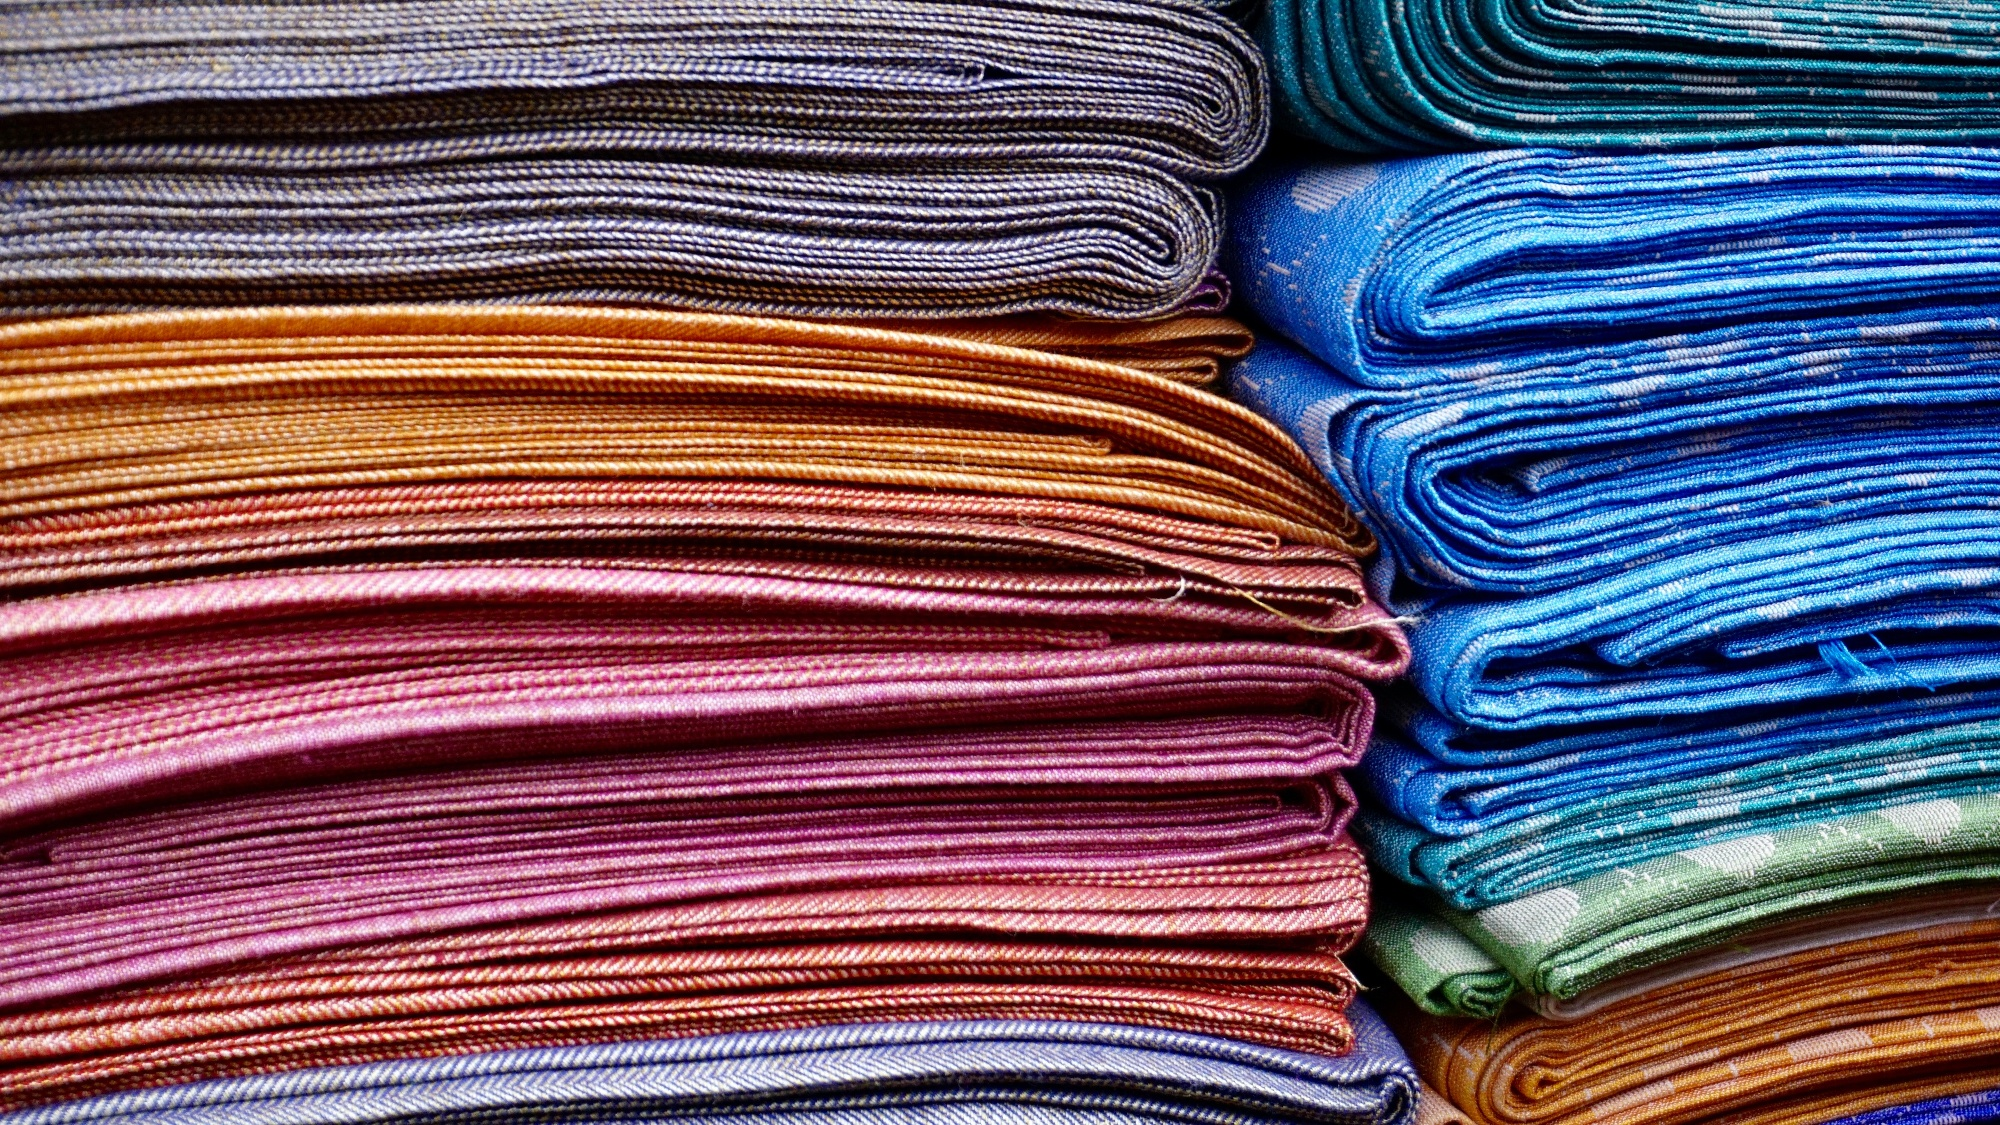 MakersValley Blog| Fashion Fabrics & Materials Every Designer Should Use